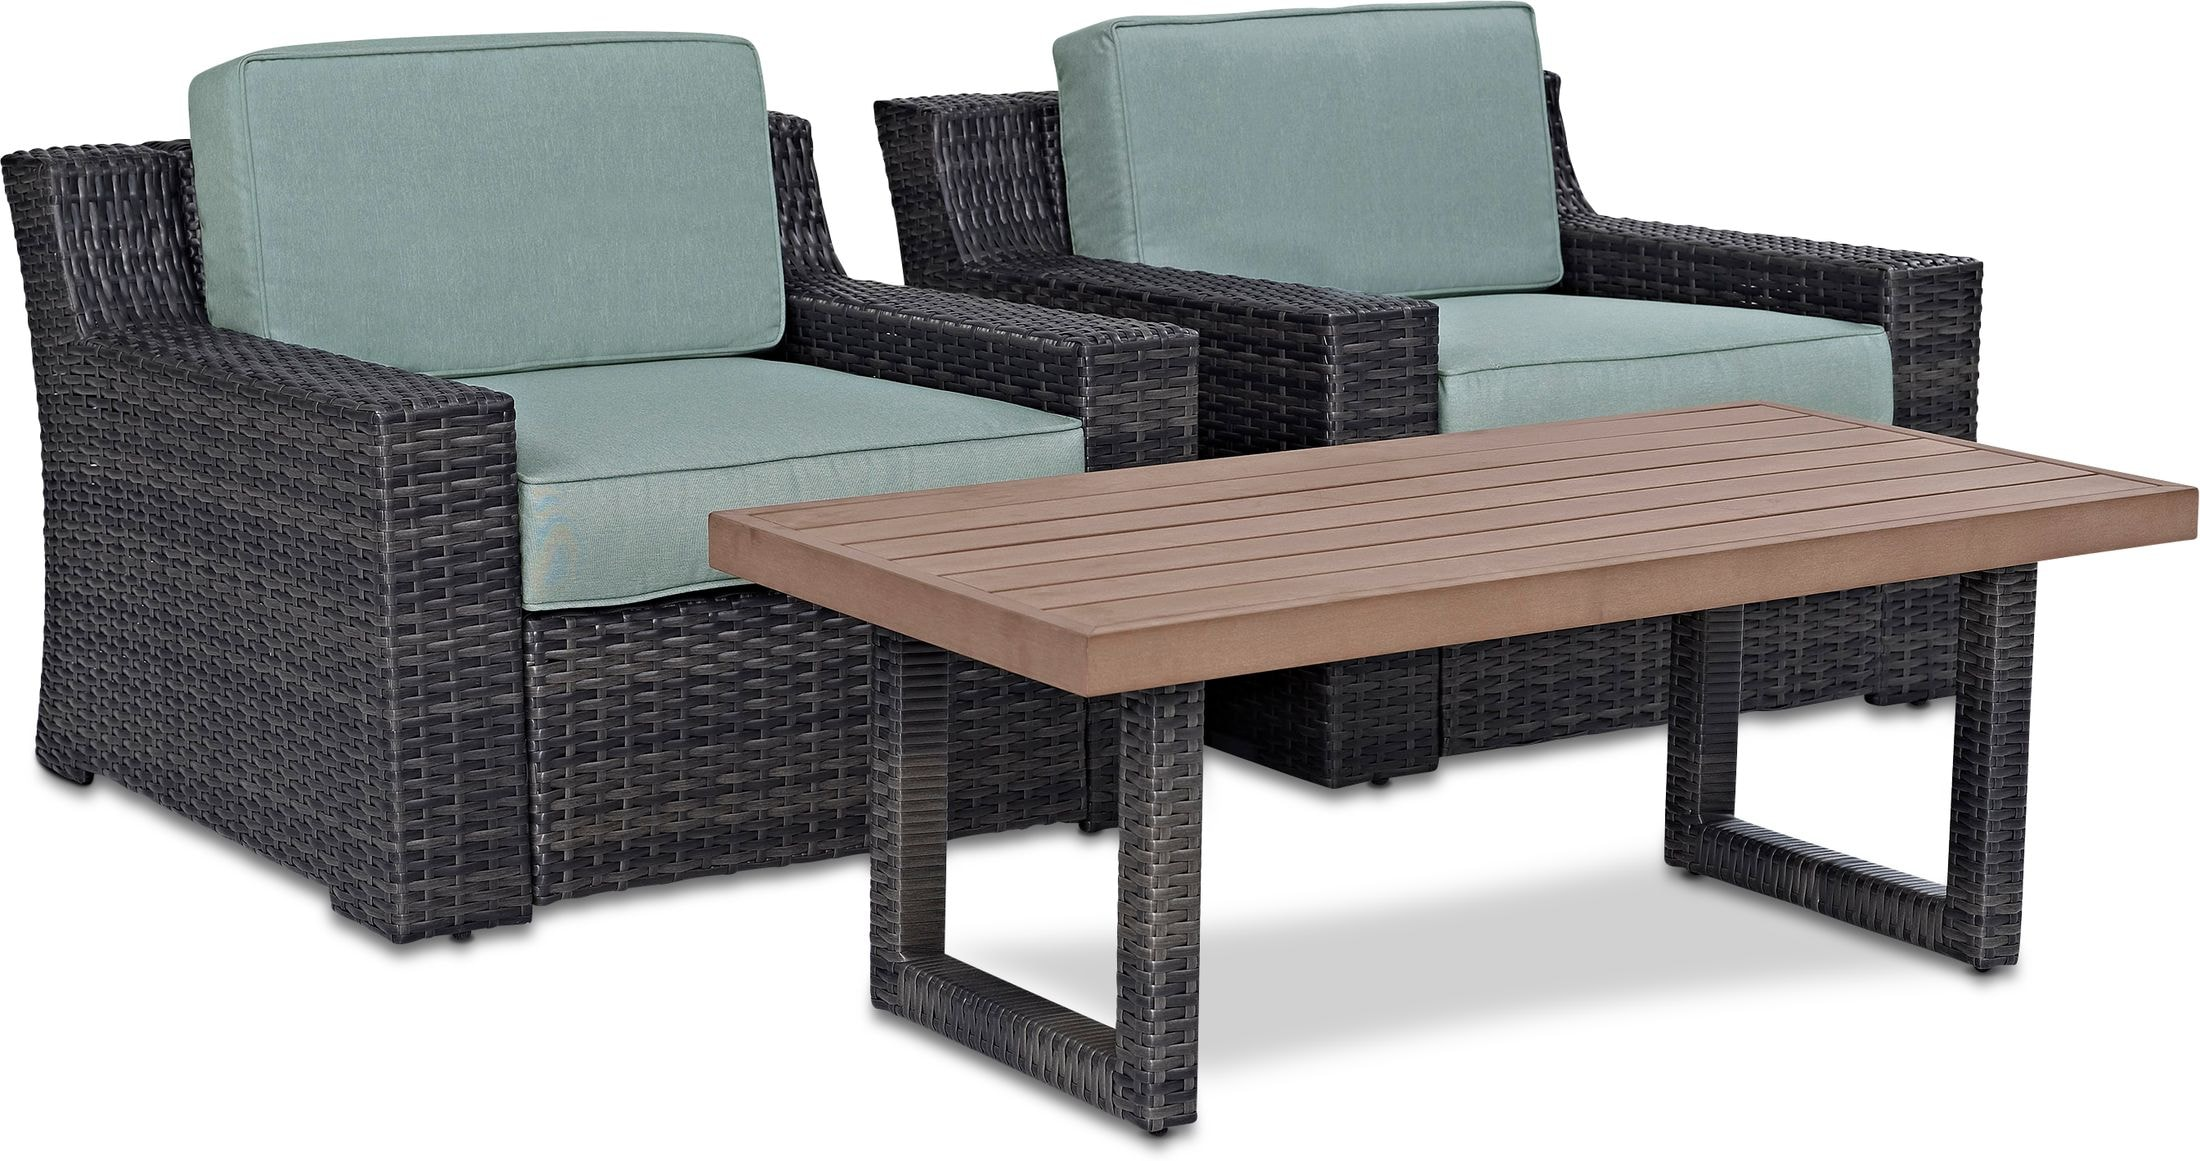 Outdoor Furniture - Tethys Set of 2 Outdoor Chairs and Coffee Table Set